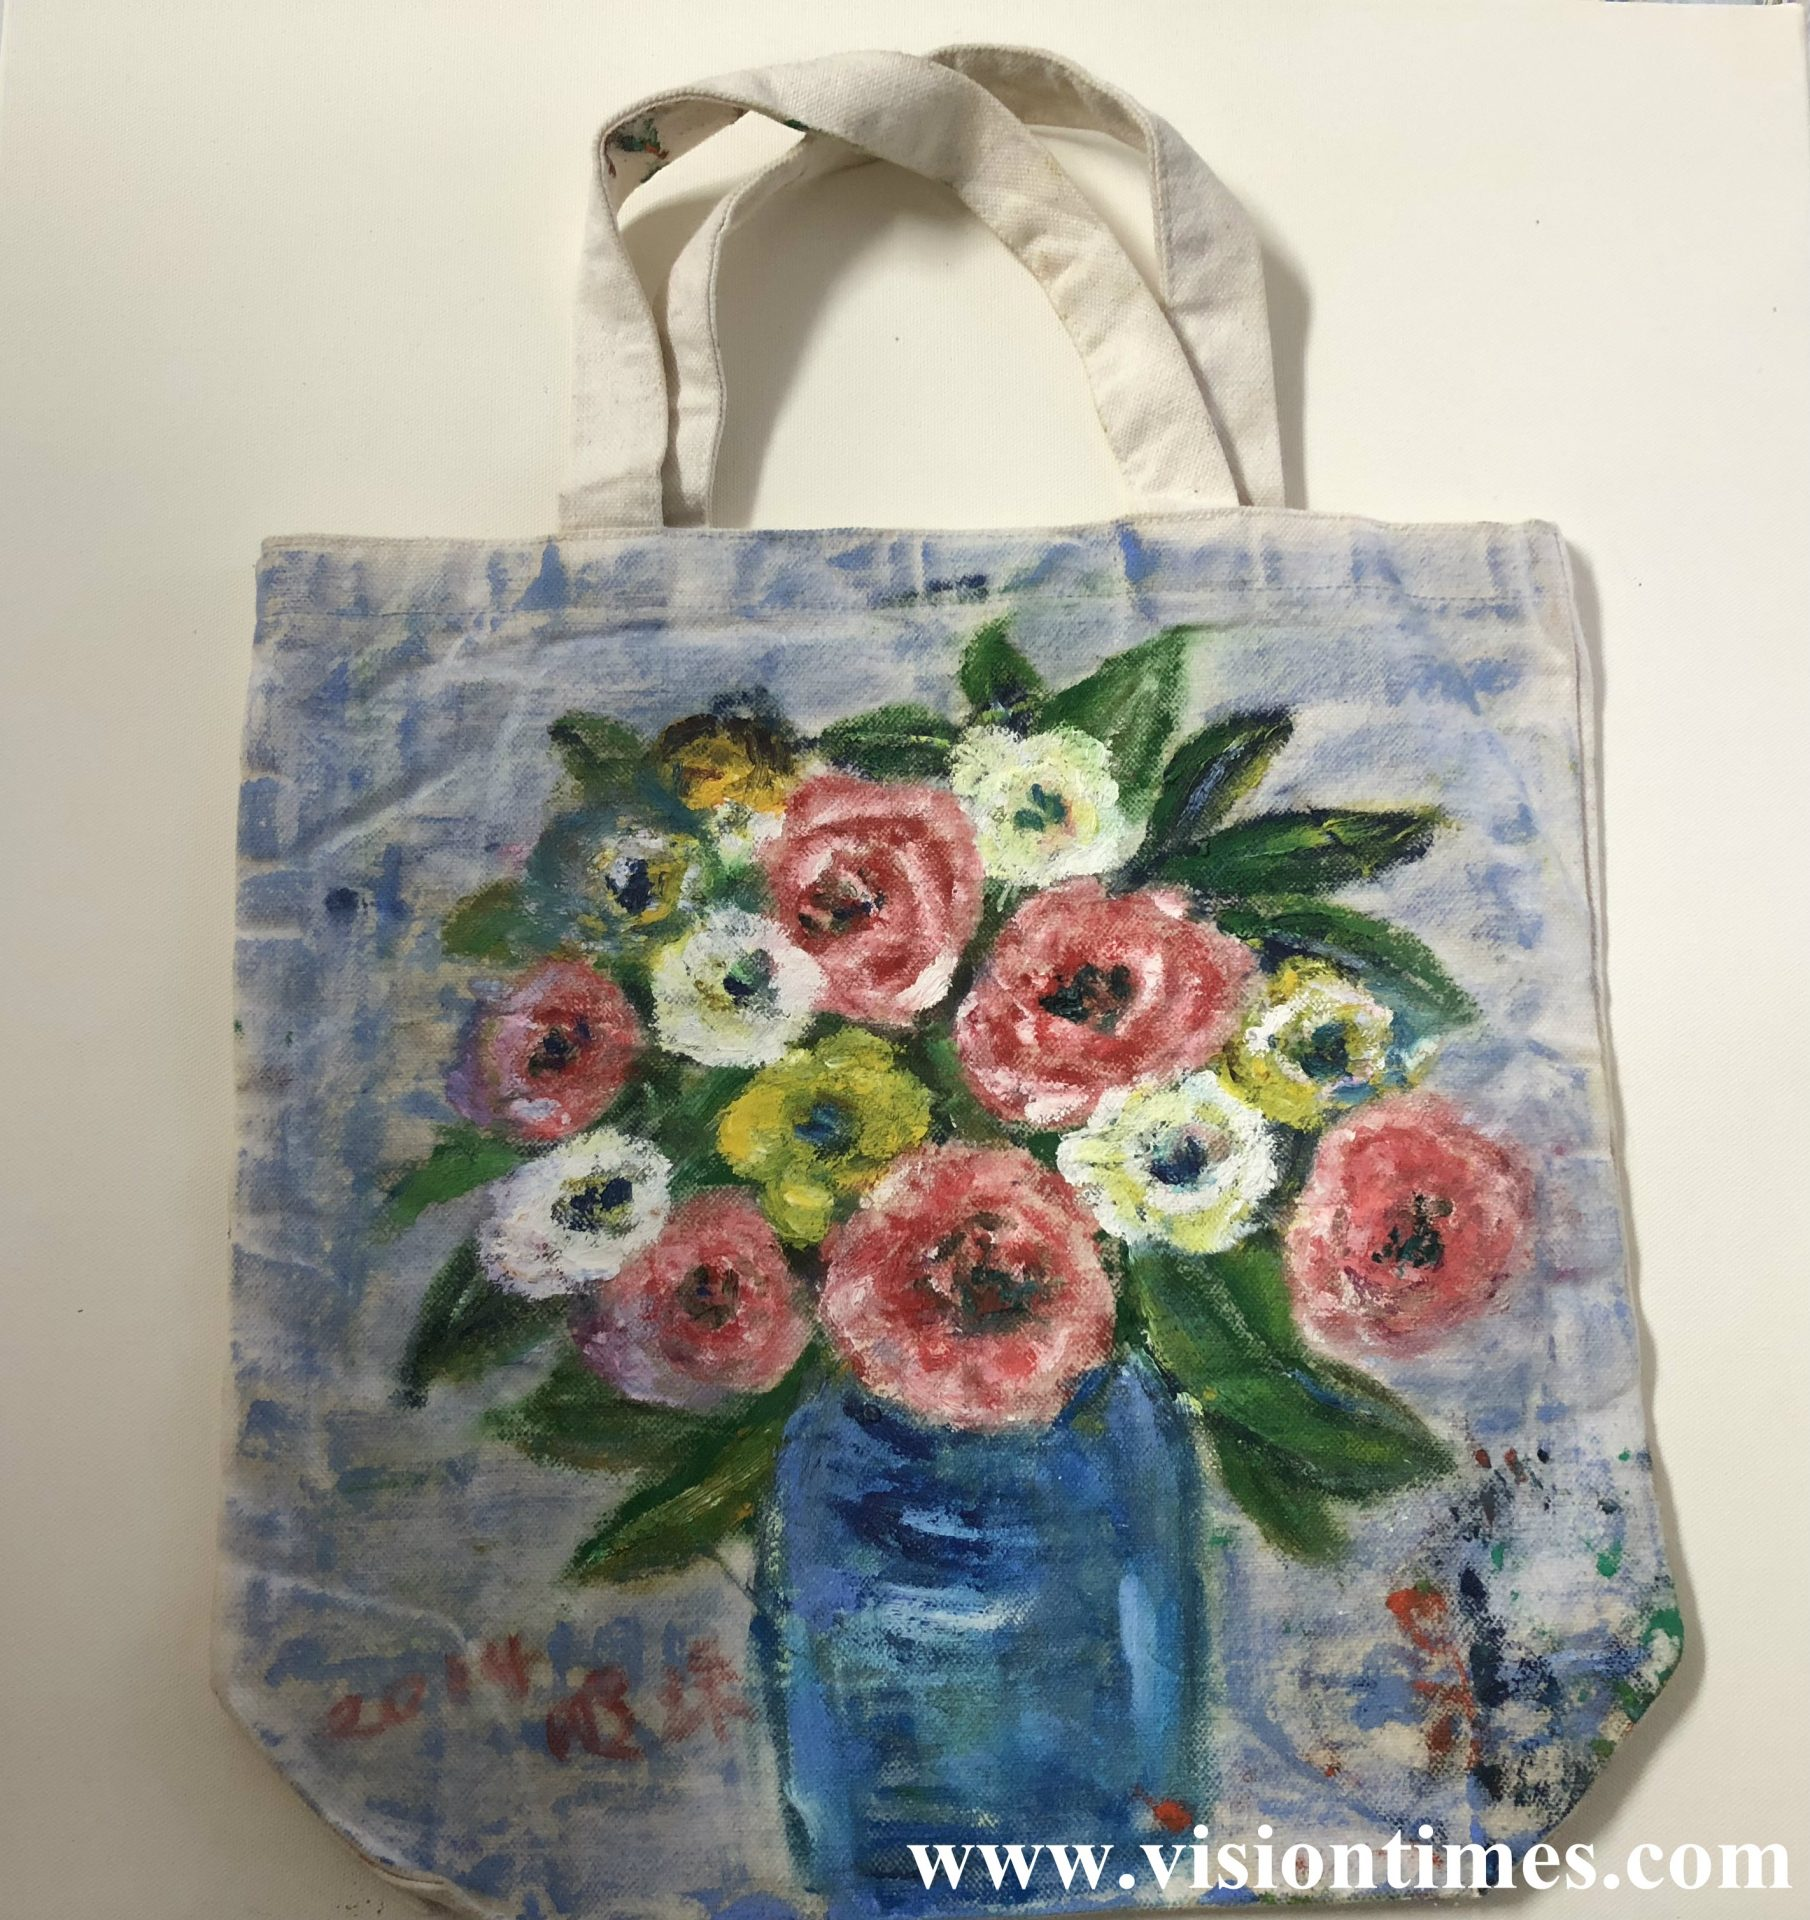 One of Wang Chen Min-chu's paintings on used bags. (Image: Billy Shyu/Vision Times)